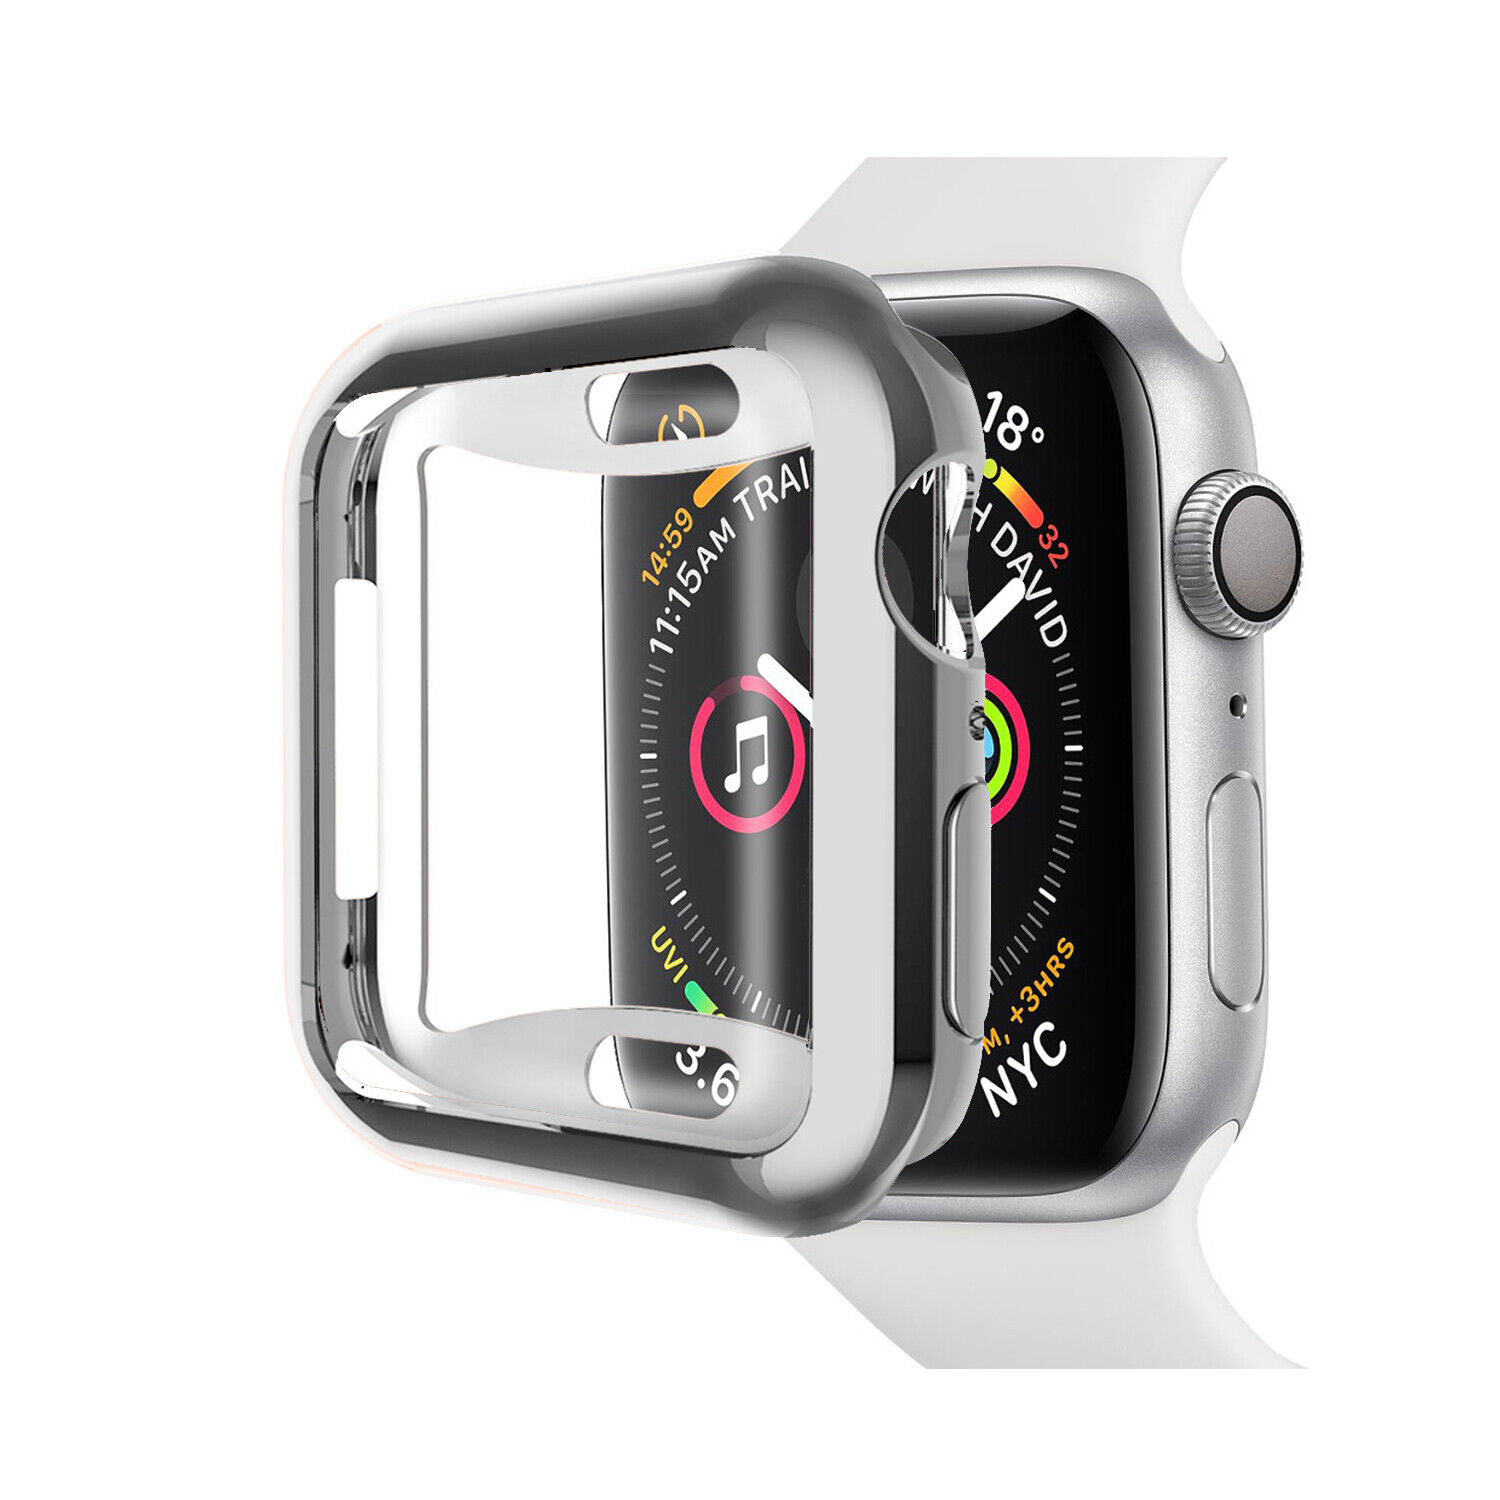 2 Pack For Apple Watch Series 4/5/6/SE 40/44mm Screen Protector Soft Case Cover Cases, Covers & Skins